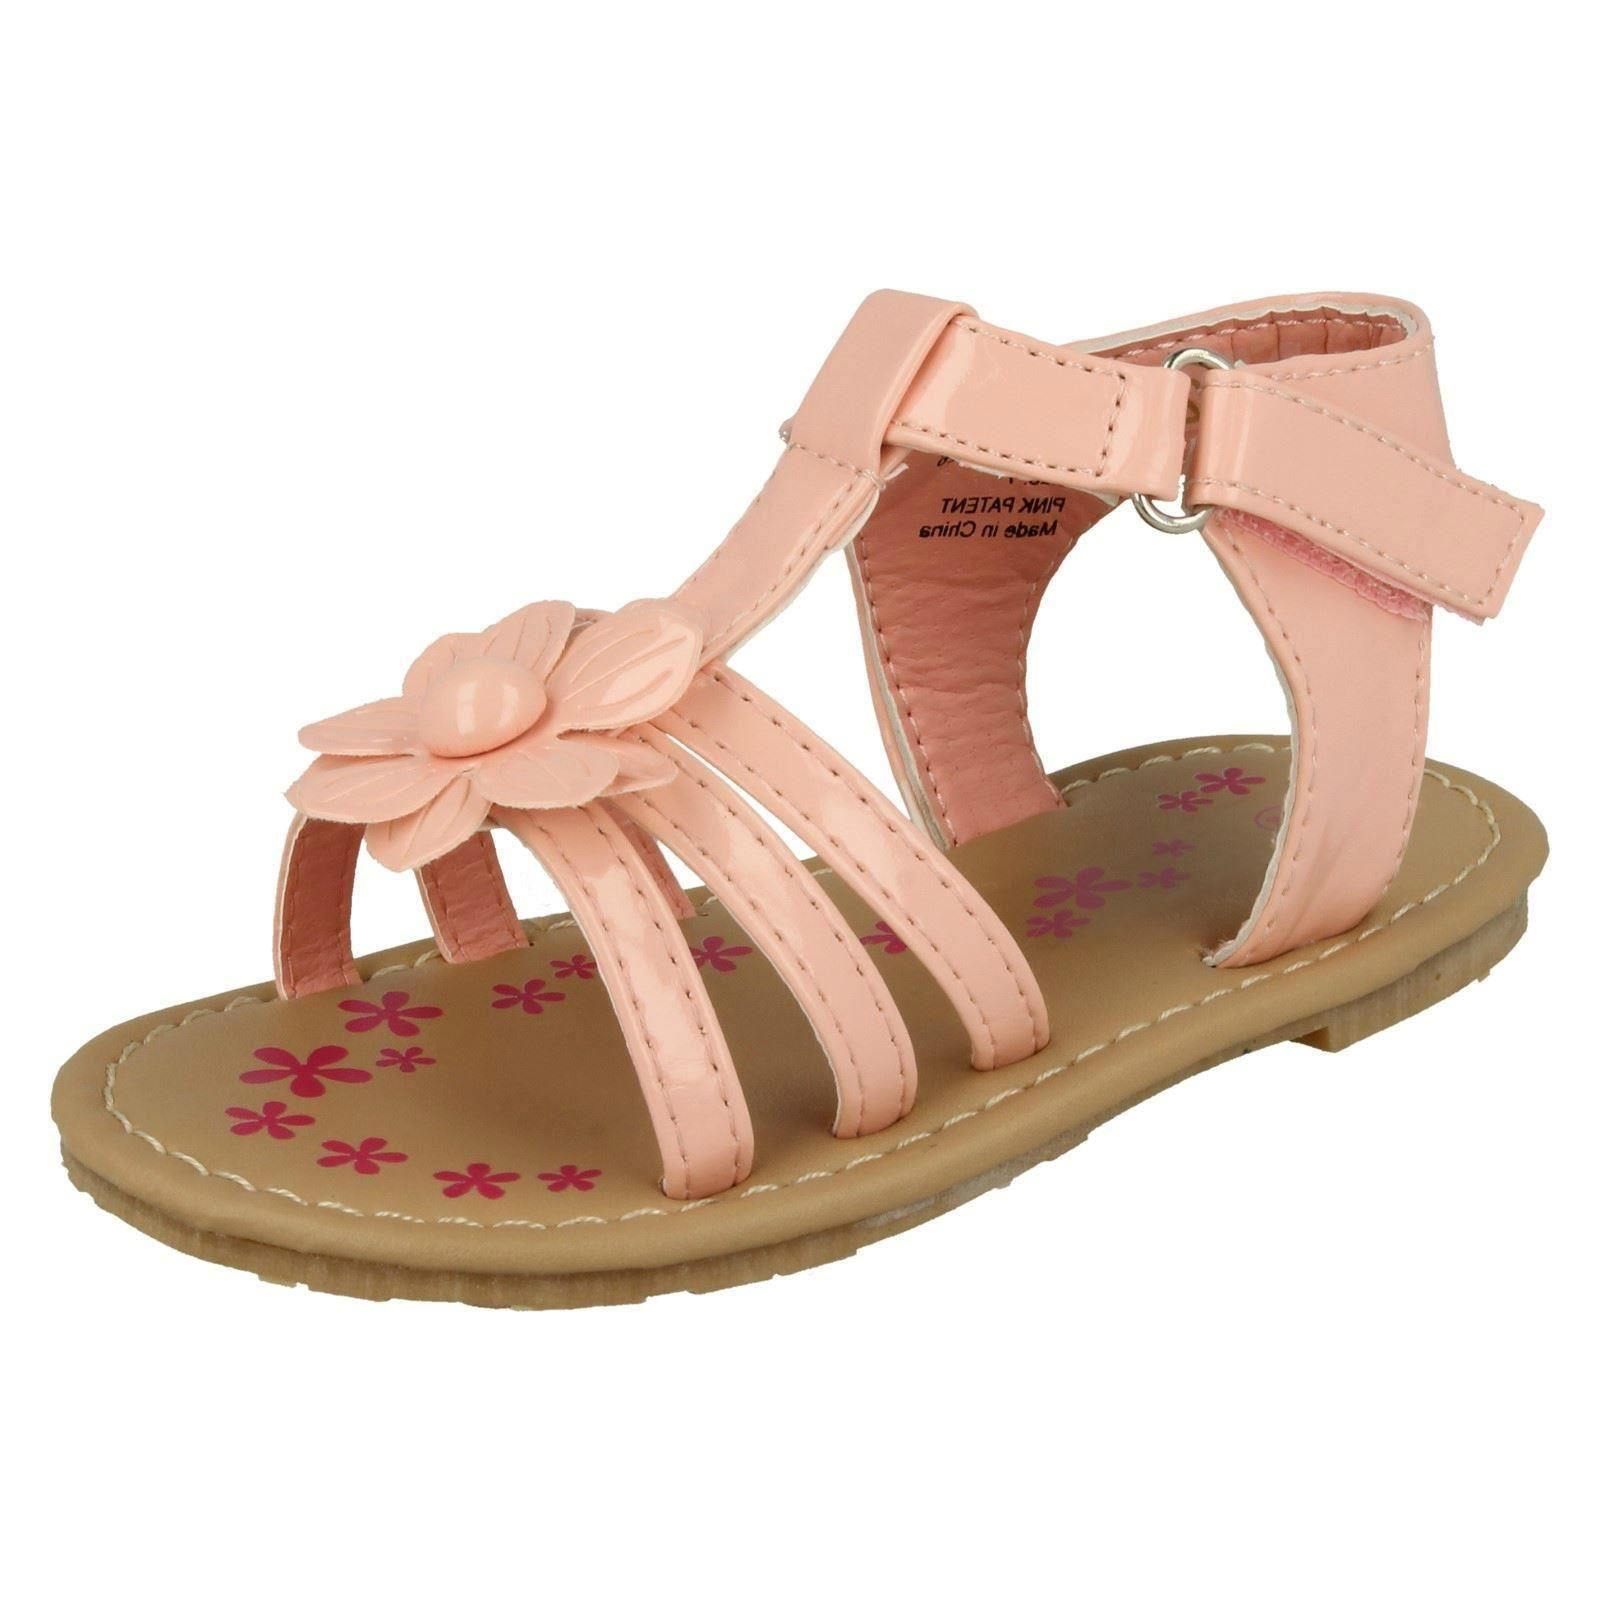 Shop girls shoes, sandles & footwear that inspires and comforts every girl and kid. Everyday Free Shipping.